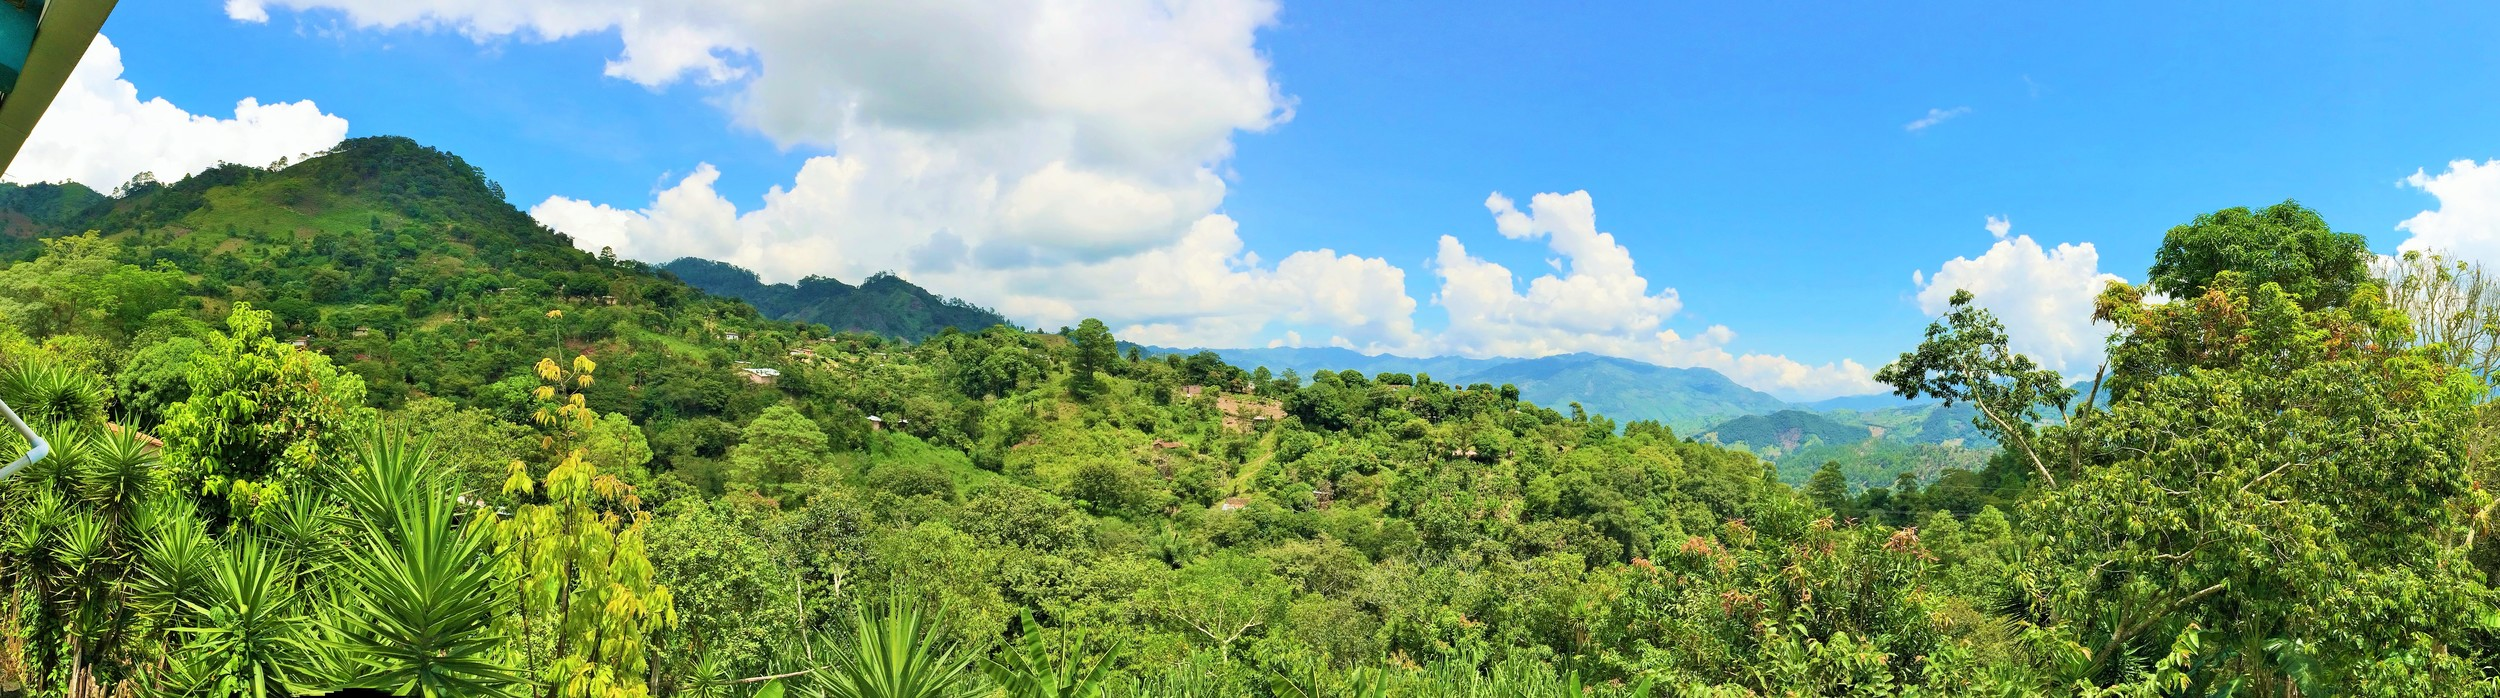 Another beautiful view of the mountains of Lempira.